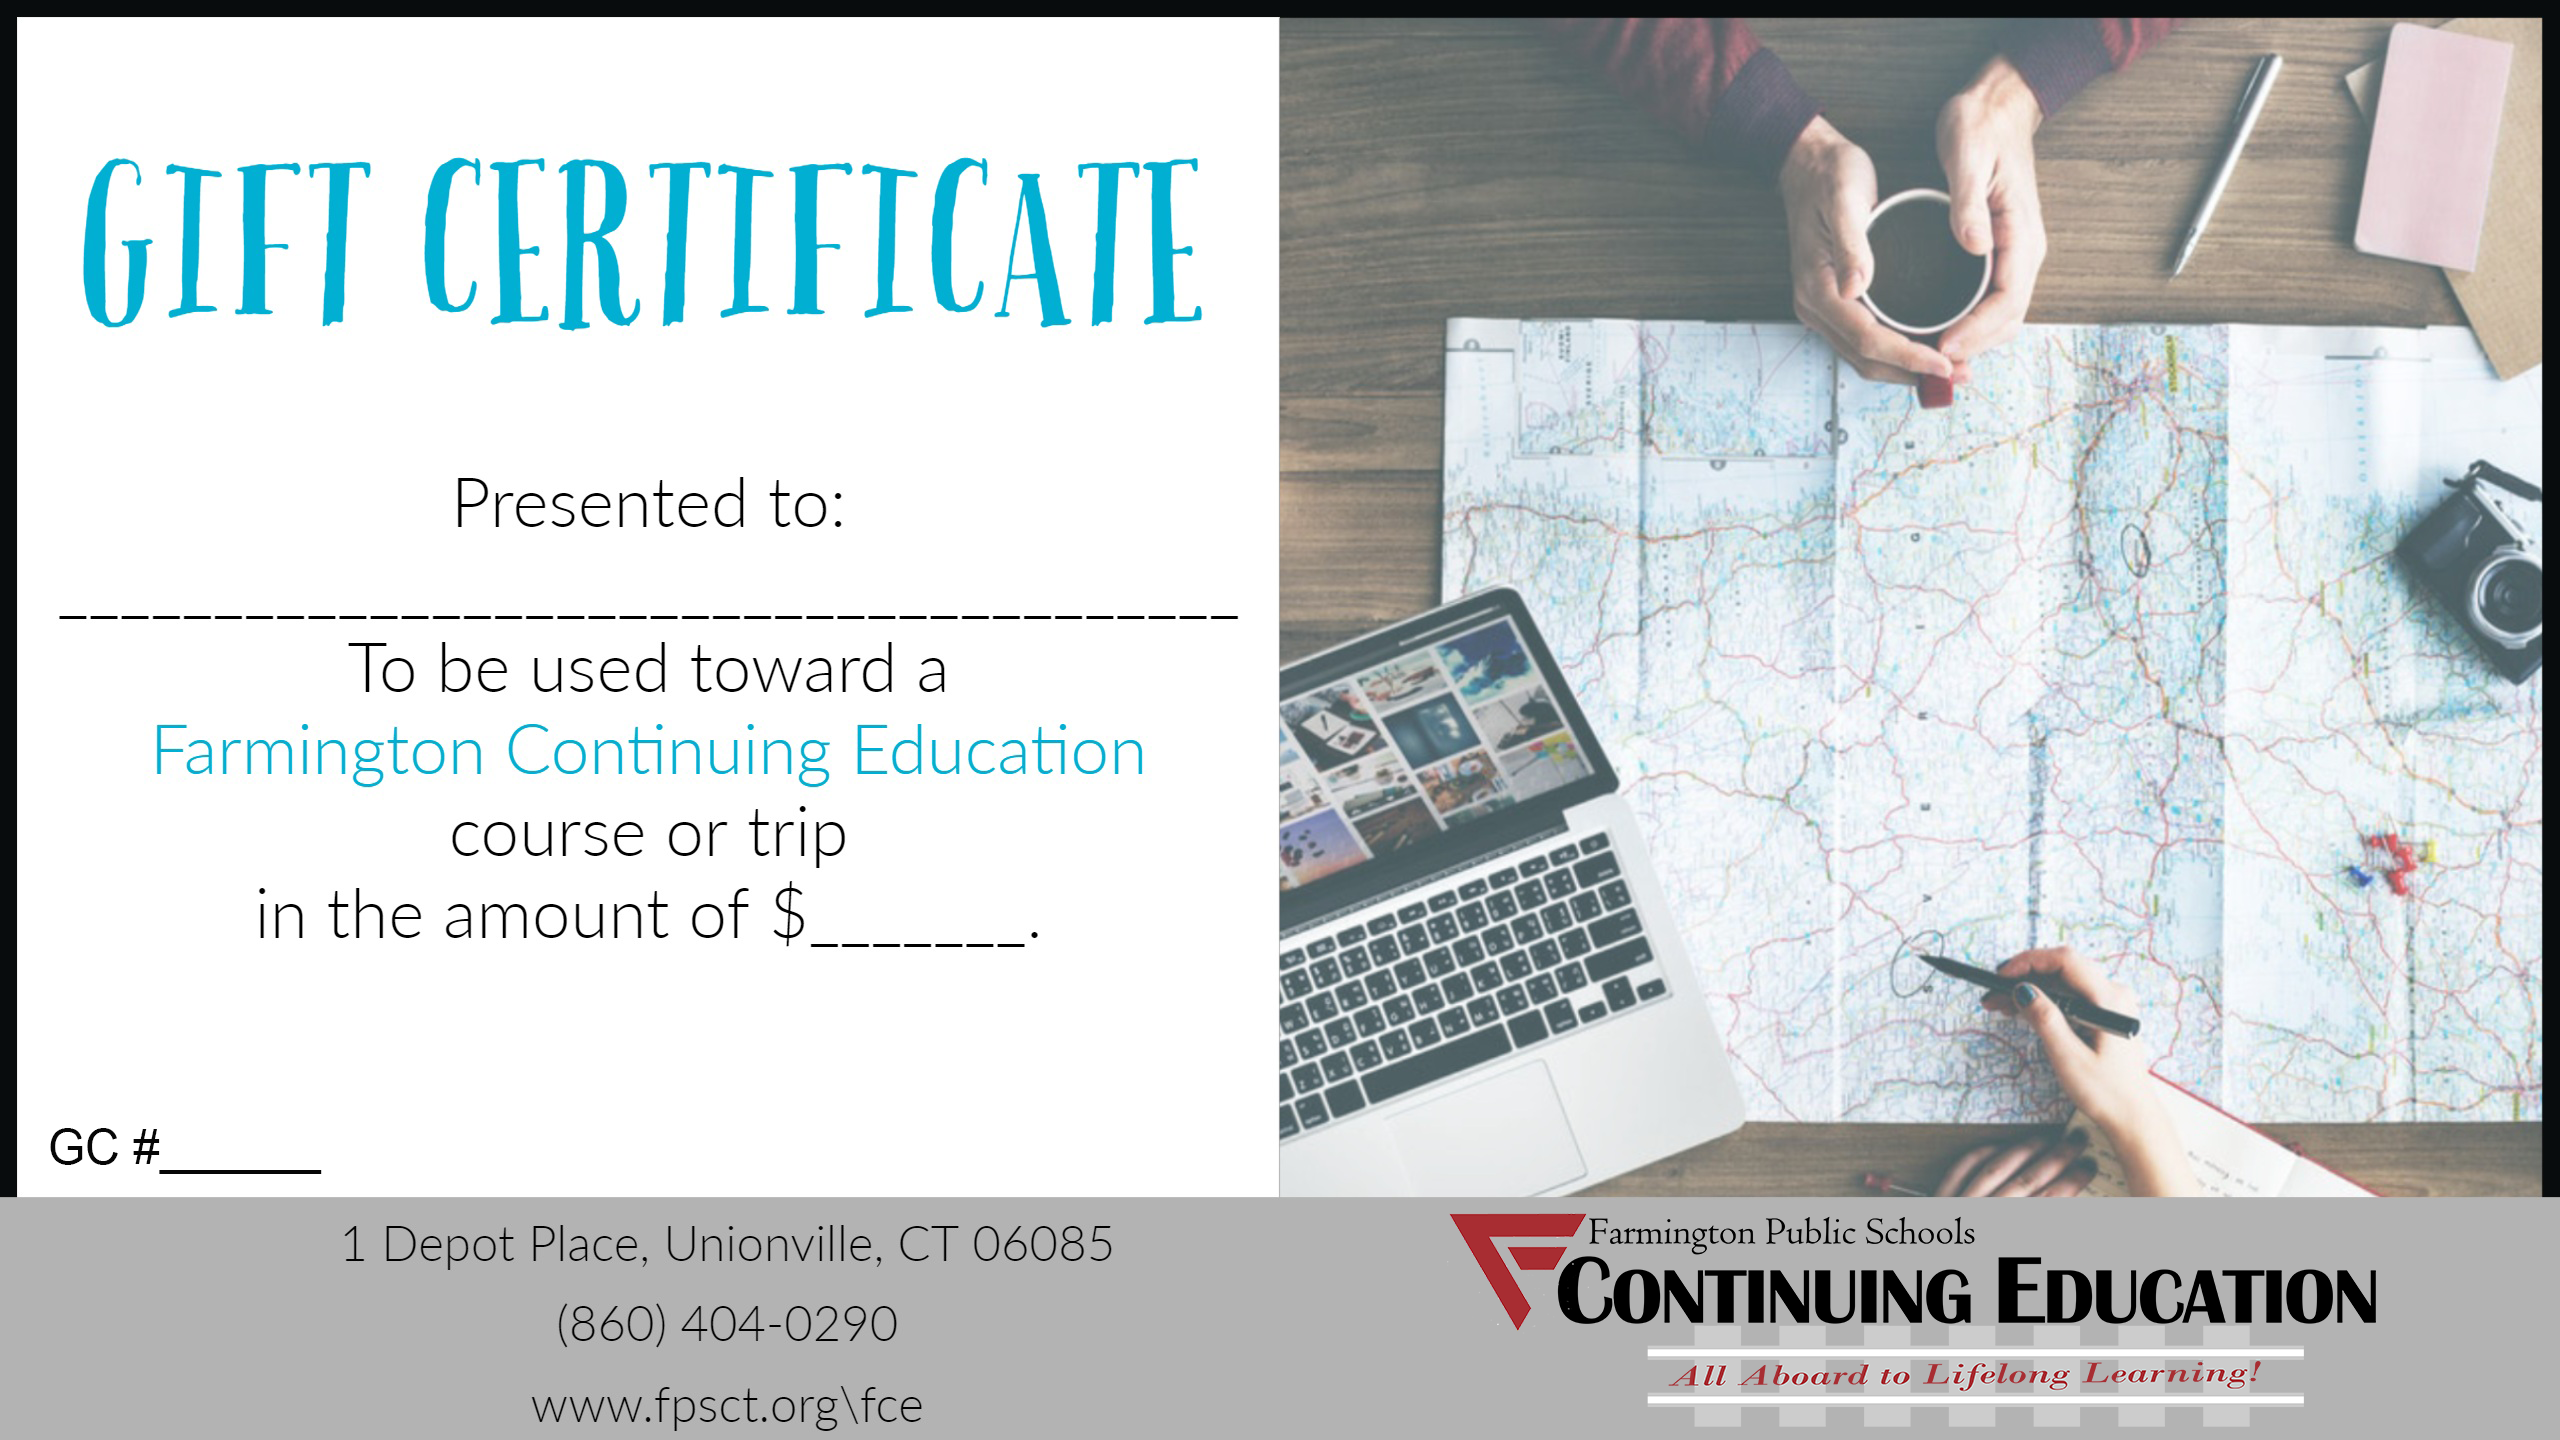 General education development ged farmington public schools gift certificates can be used to enjoy an adult or youth course focusing on an interest or hobby professional development opportunities xflitez Choice Image